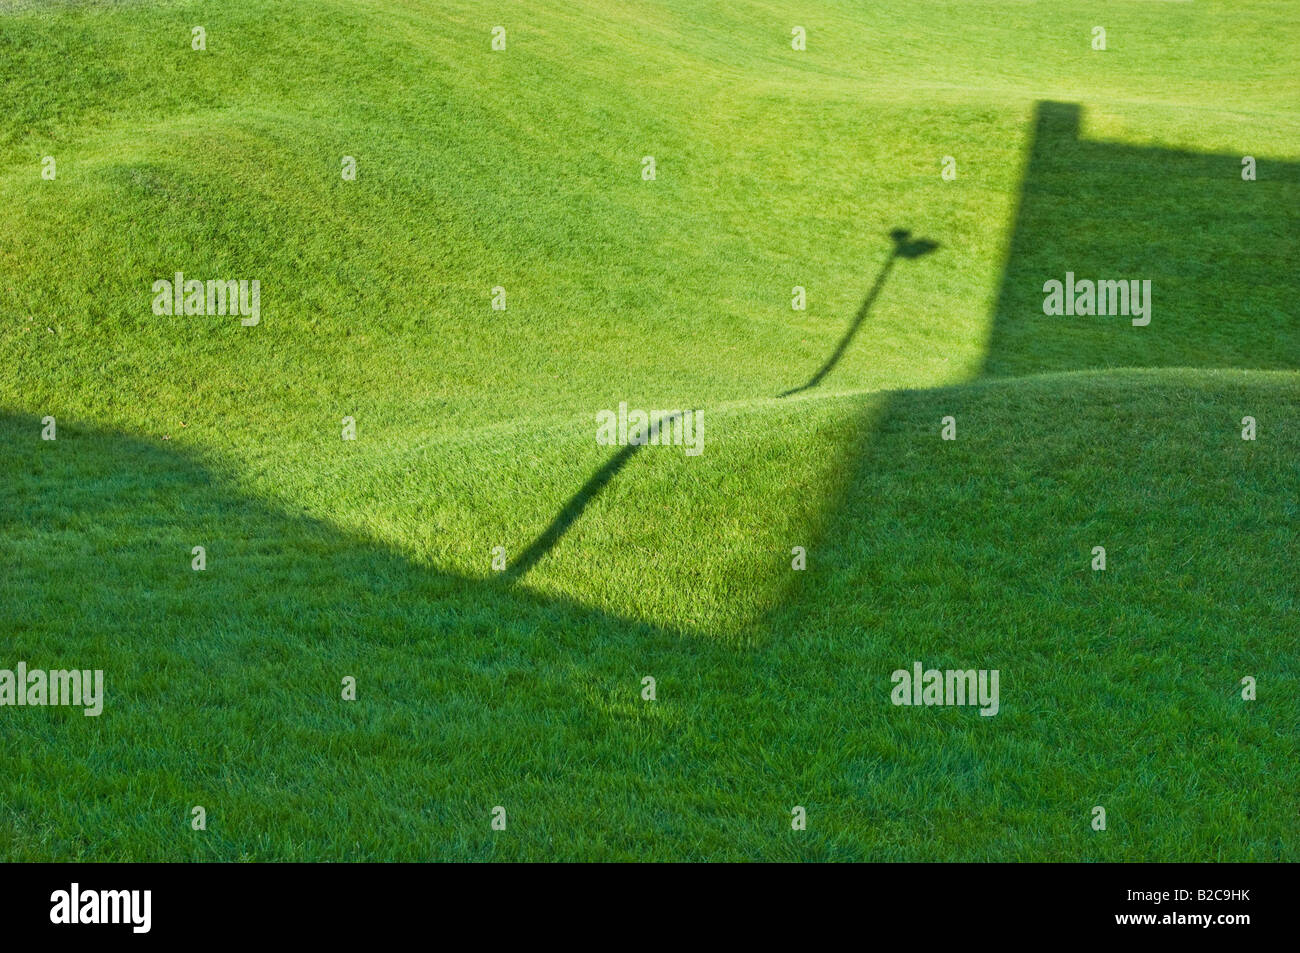 green grass rise hill mound hillock knoll hump fresh galanty show shadow play ART artificial garden fee playground - Stock Image